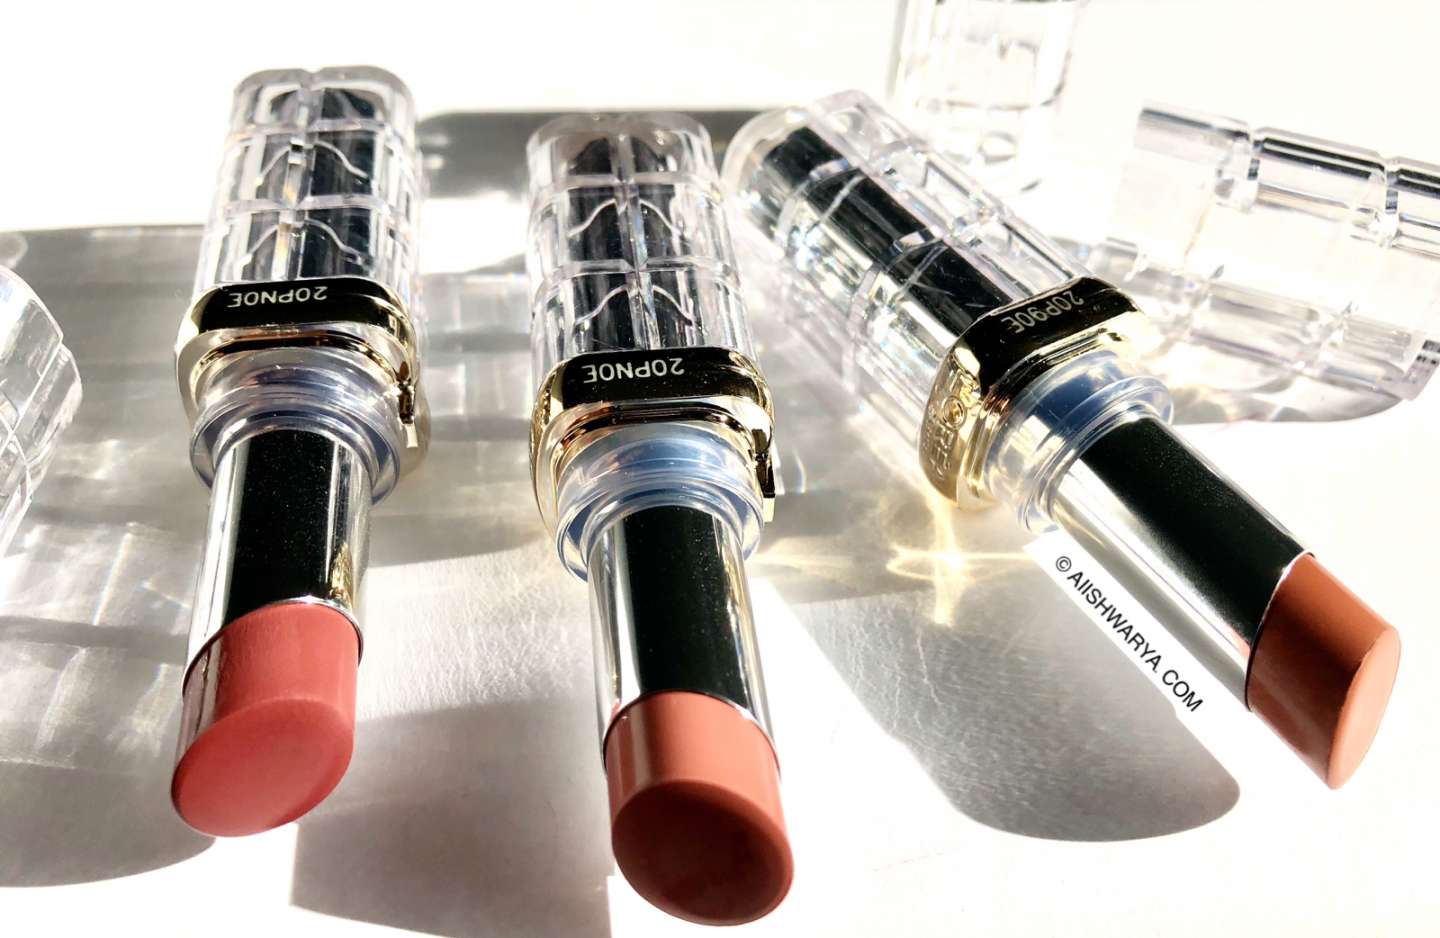 L'Oreal Color Riche Shine Lipsticks